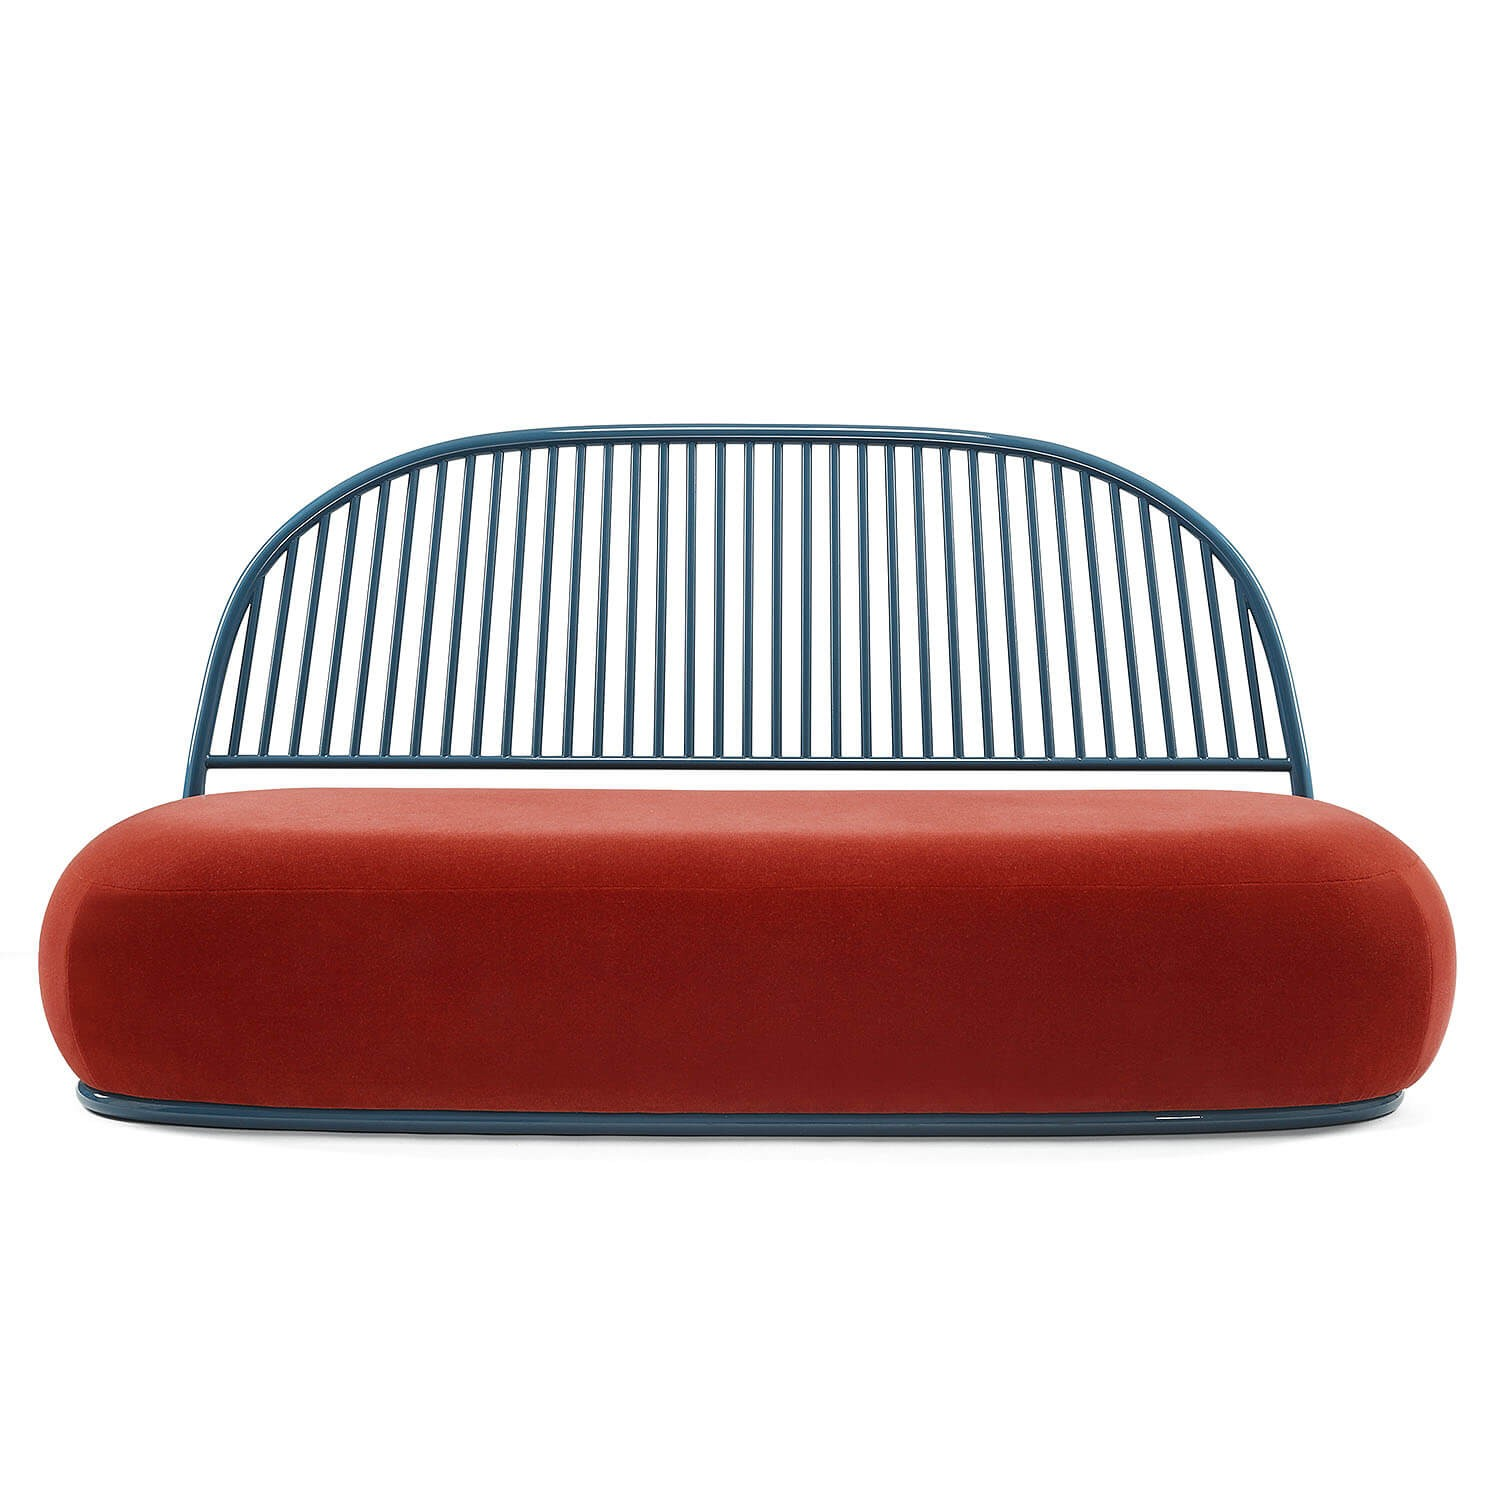 Charmant Circe Sofa Without Arms